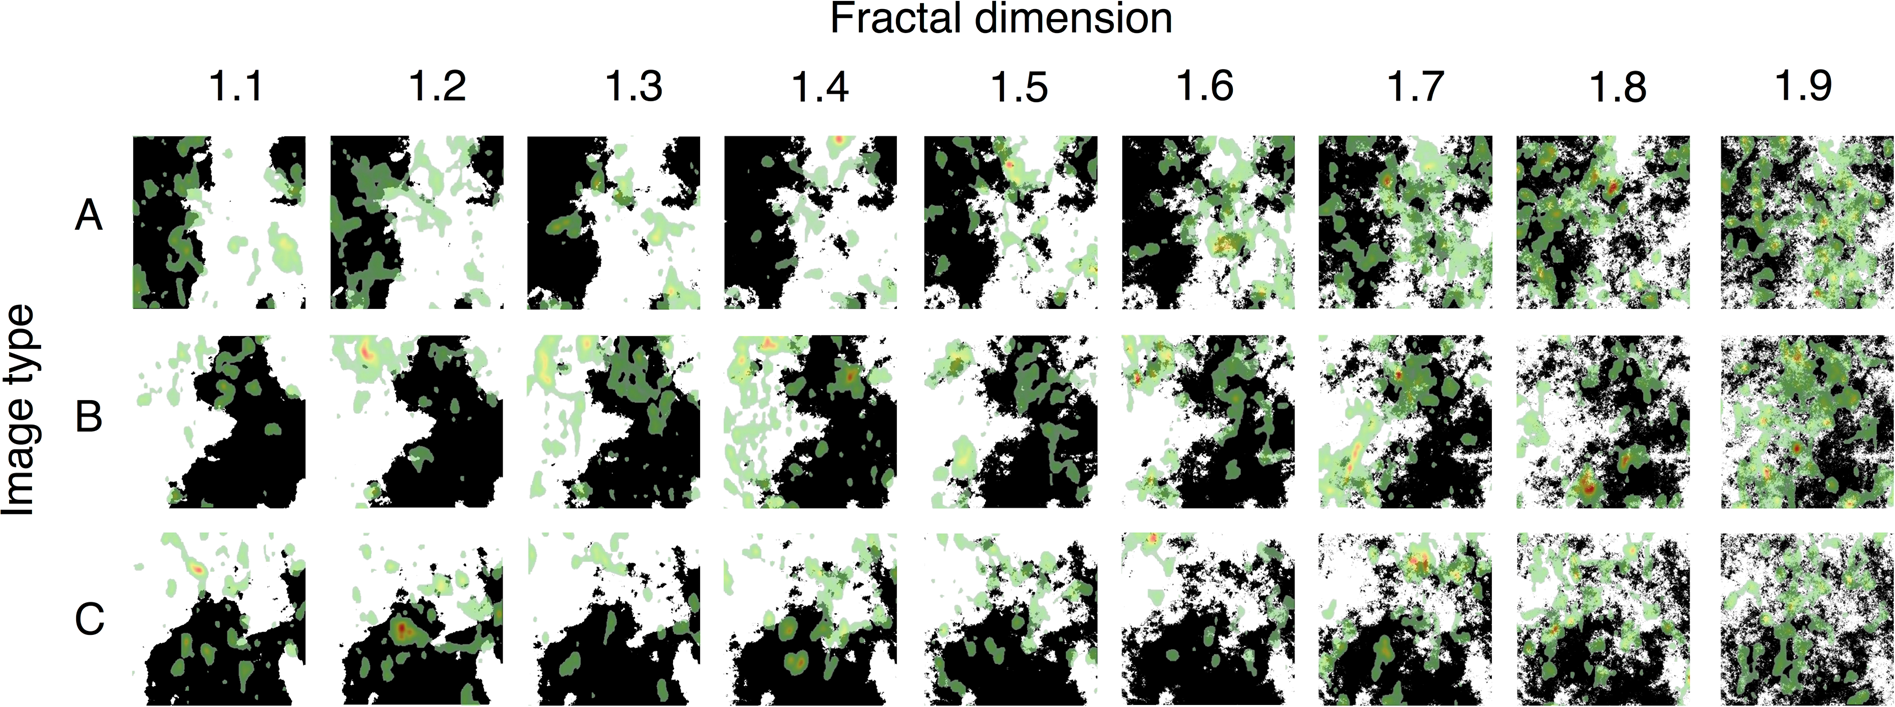 Macaques preferentially attend to visual patterns with